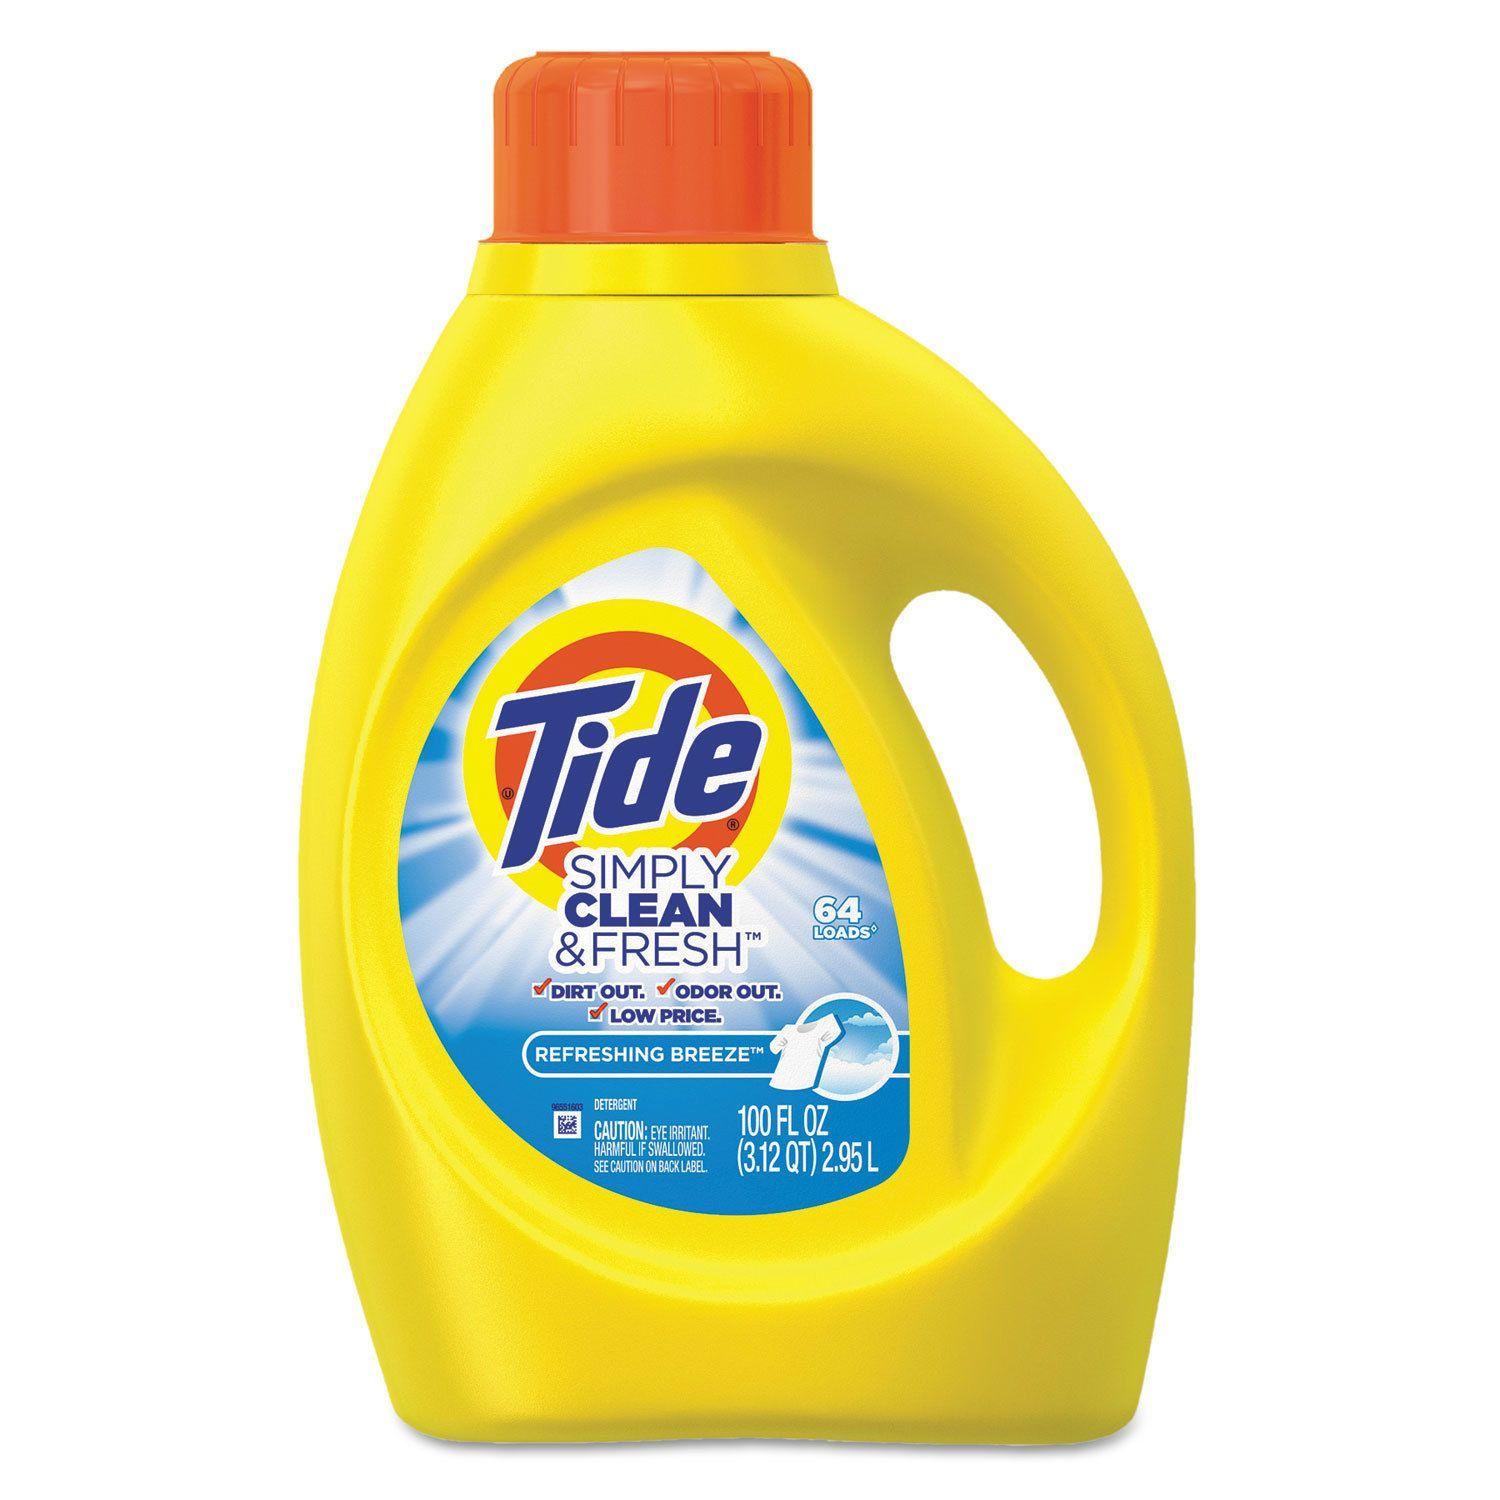 Tide Simply Clean And Fresh Laundry Detergent Refreshing Breeze